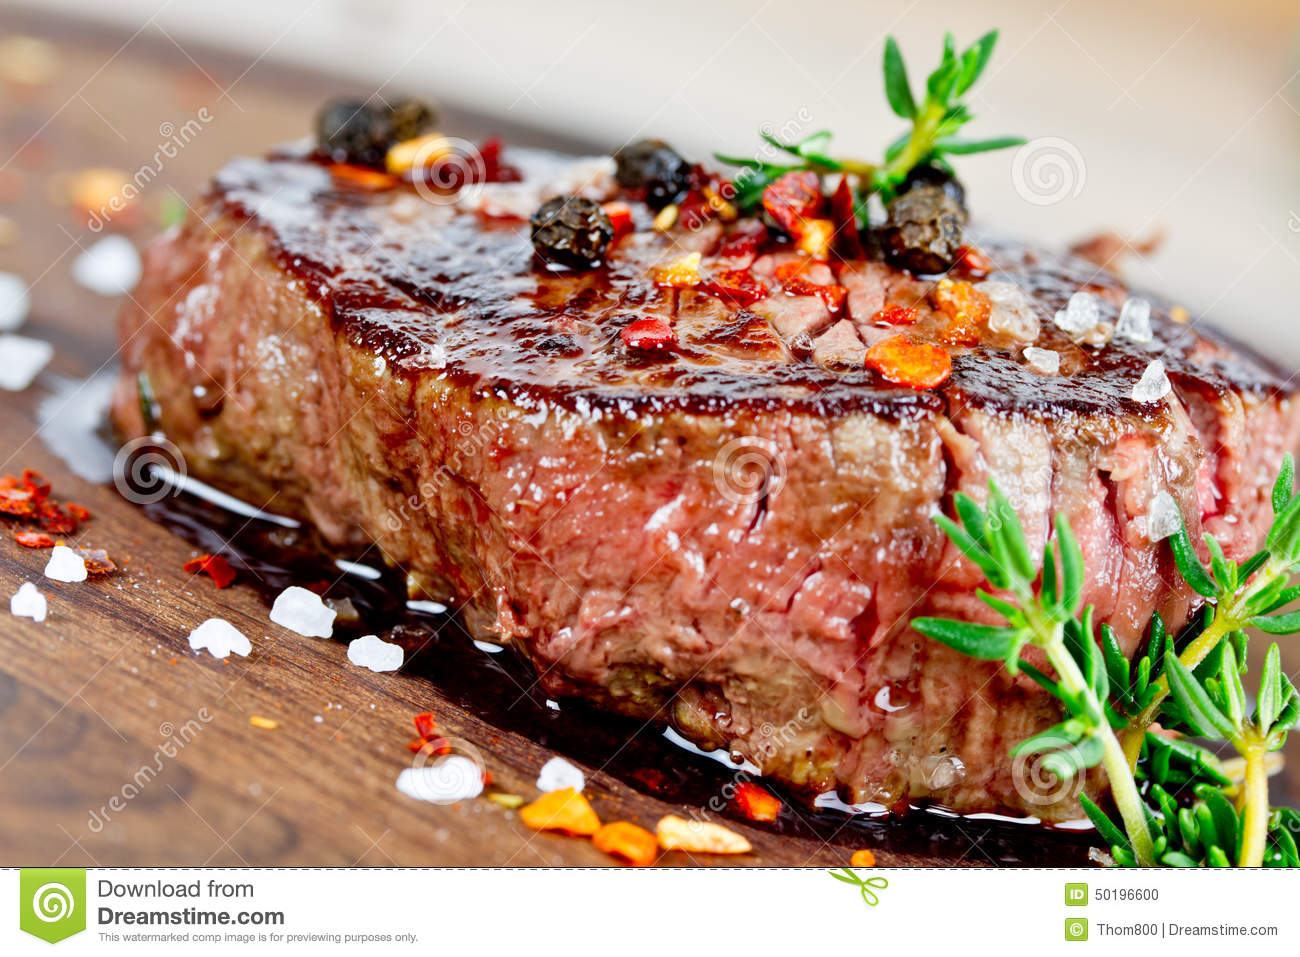 Grilled Steak Stock Photo - Image: 50196600